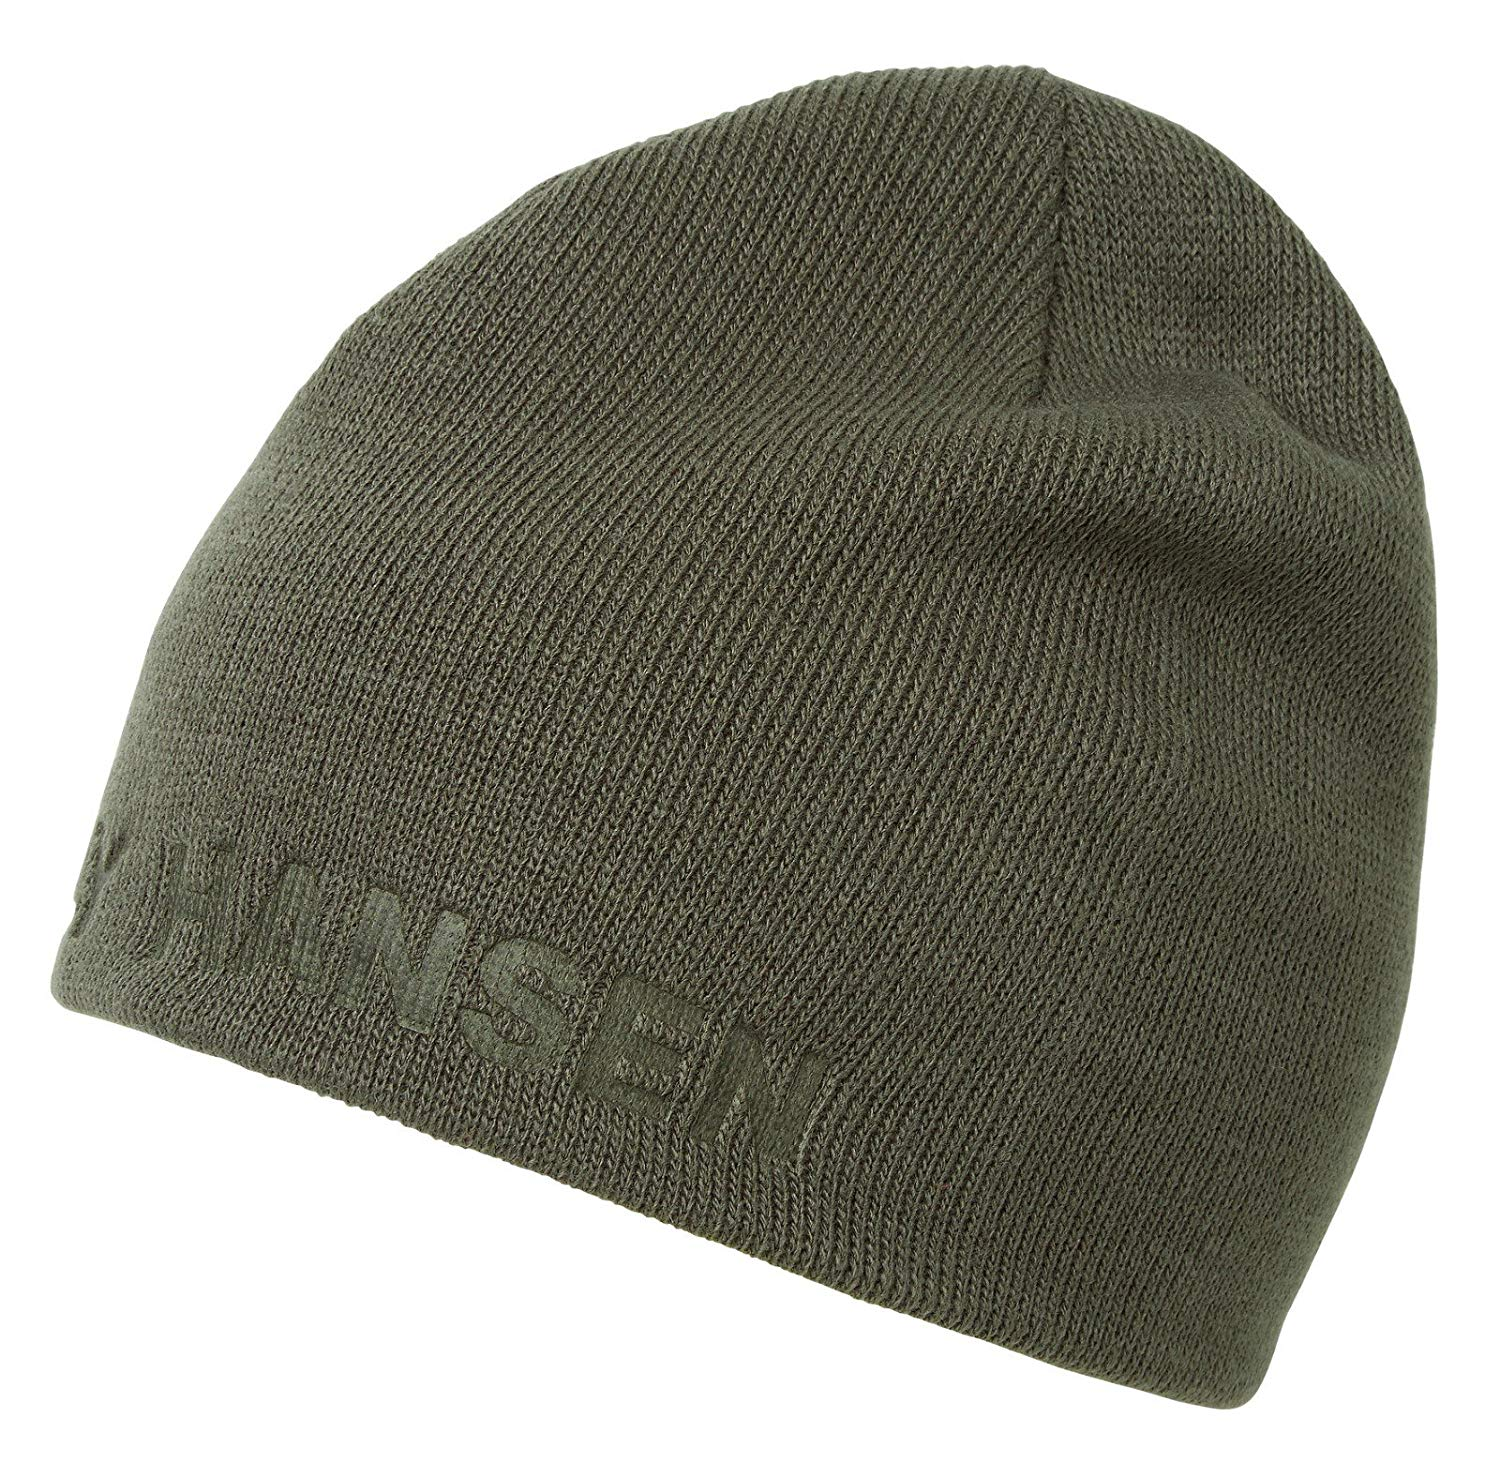 Helly Hansen Unisex Outline Reversible Beanie